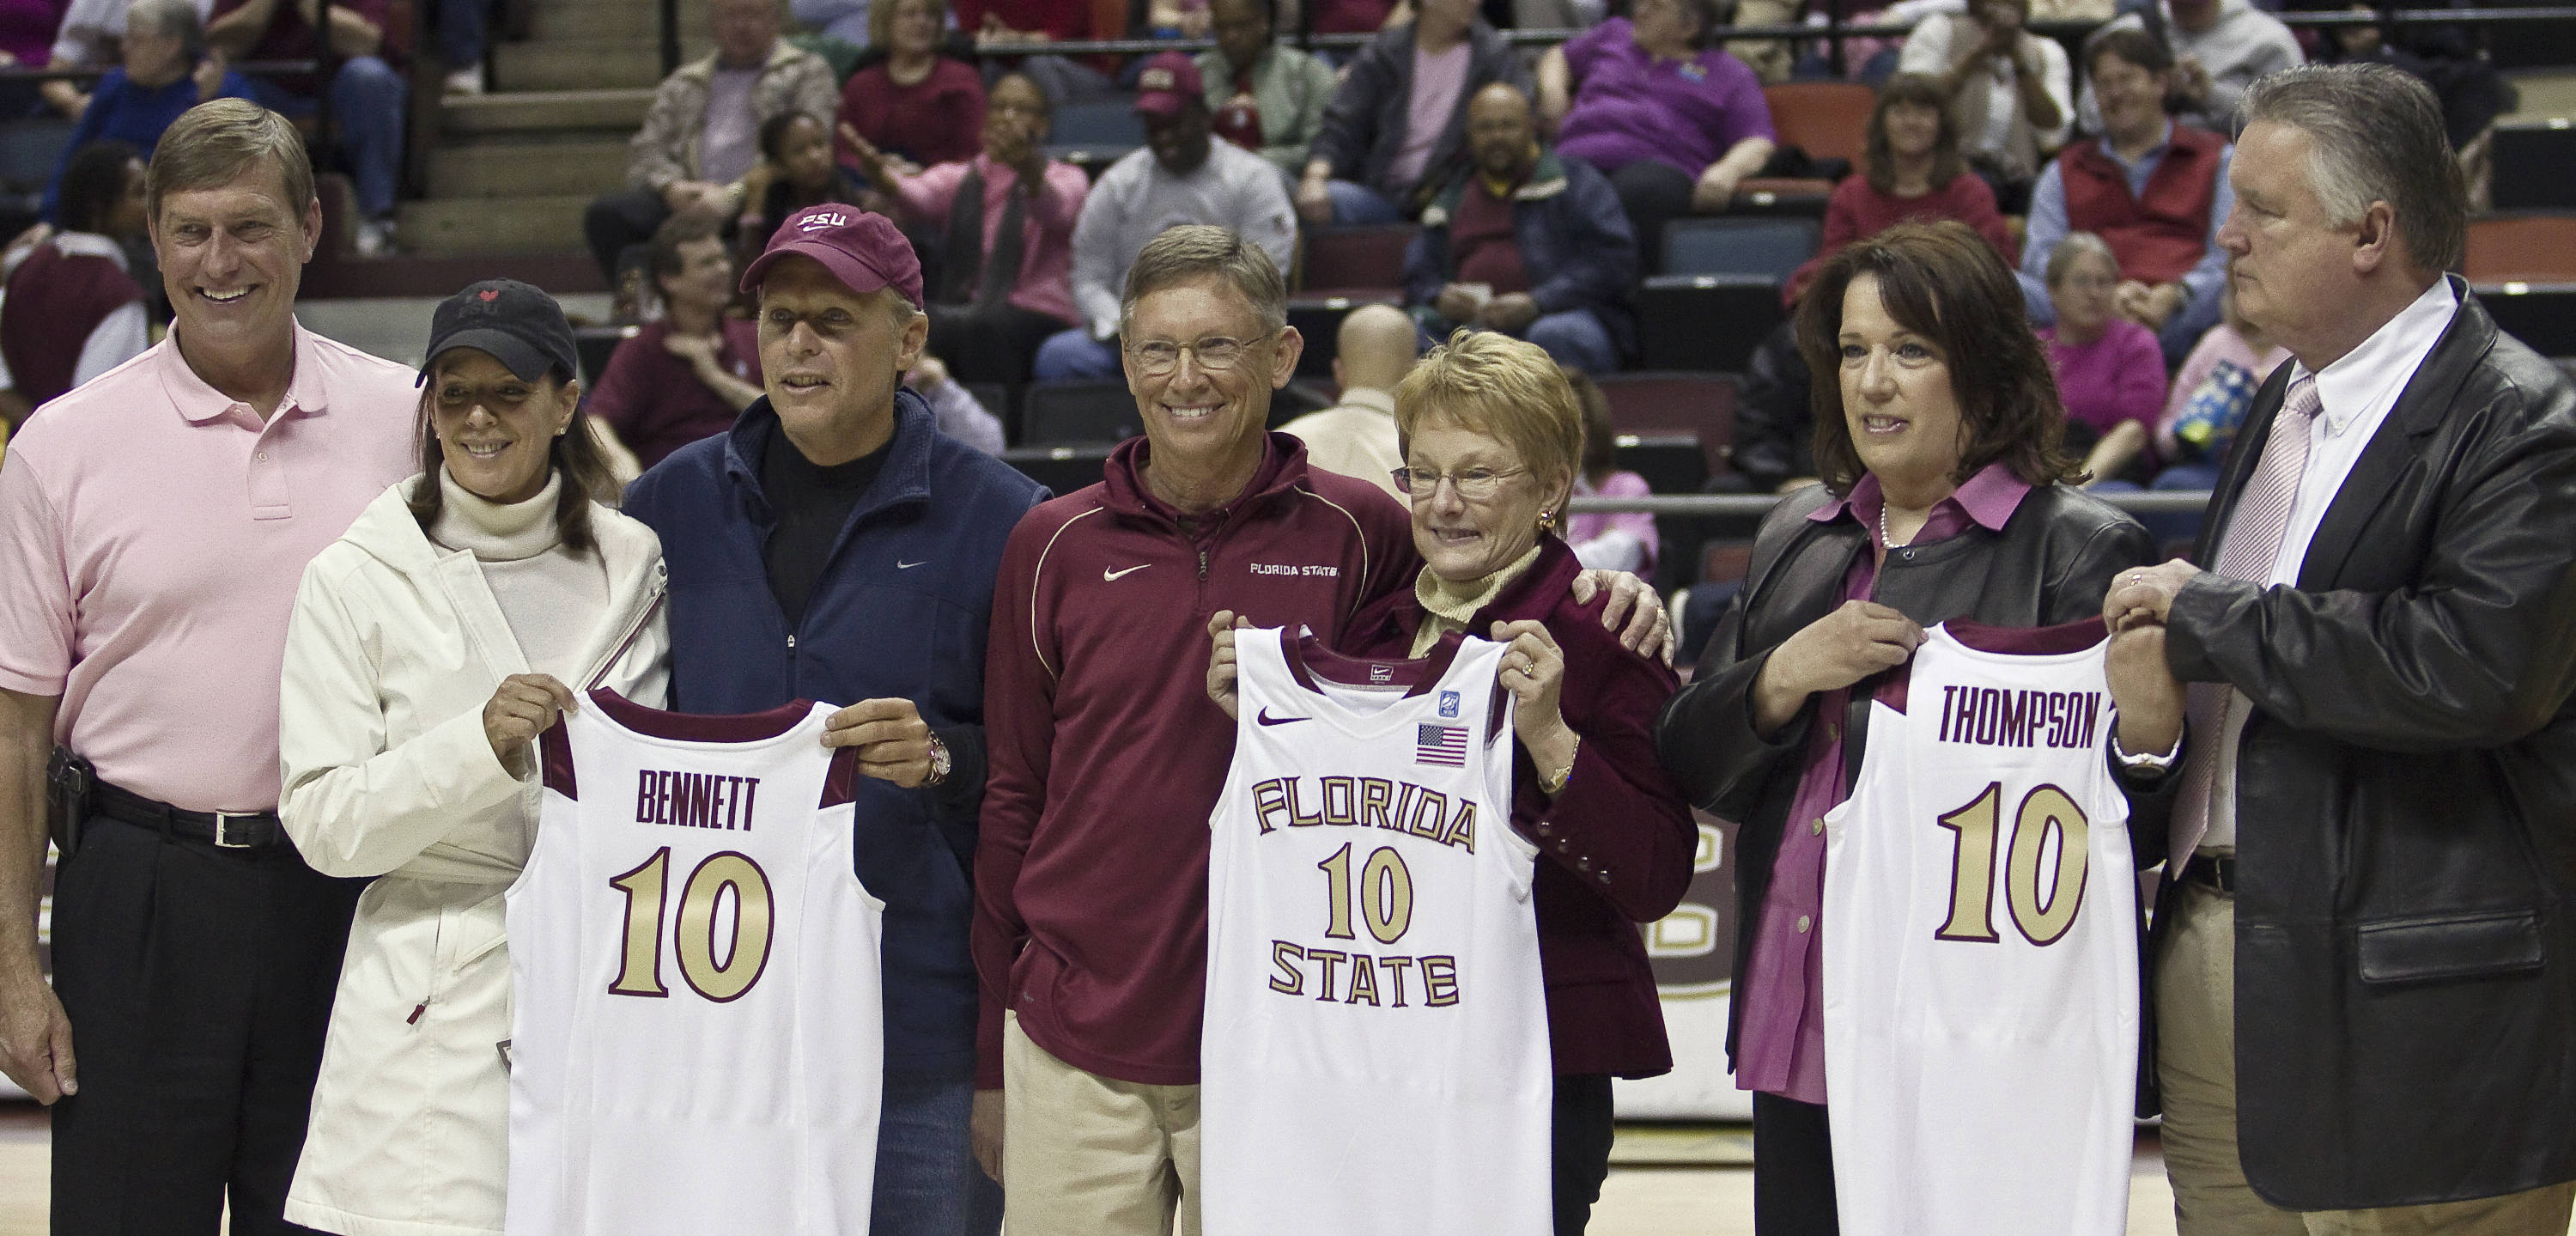 FSU vs Georgia Tech- 02//11/11 - Honored FSU Women's Basketball Donors, FSU Director of Athletics Randy Spetman